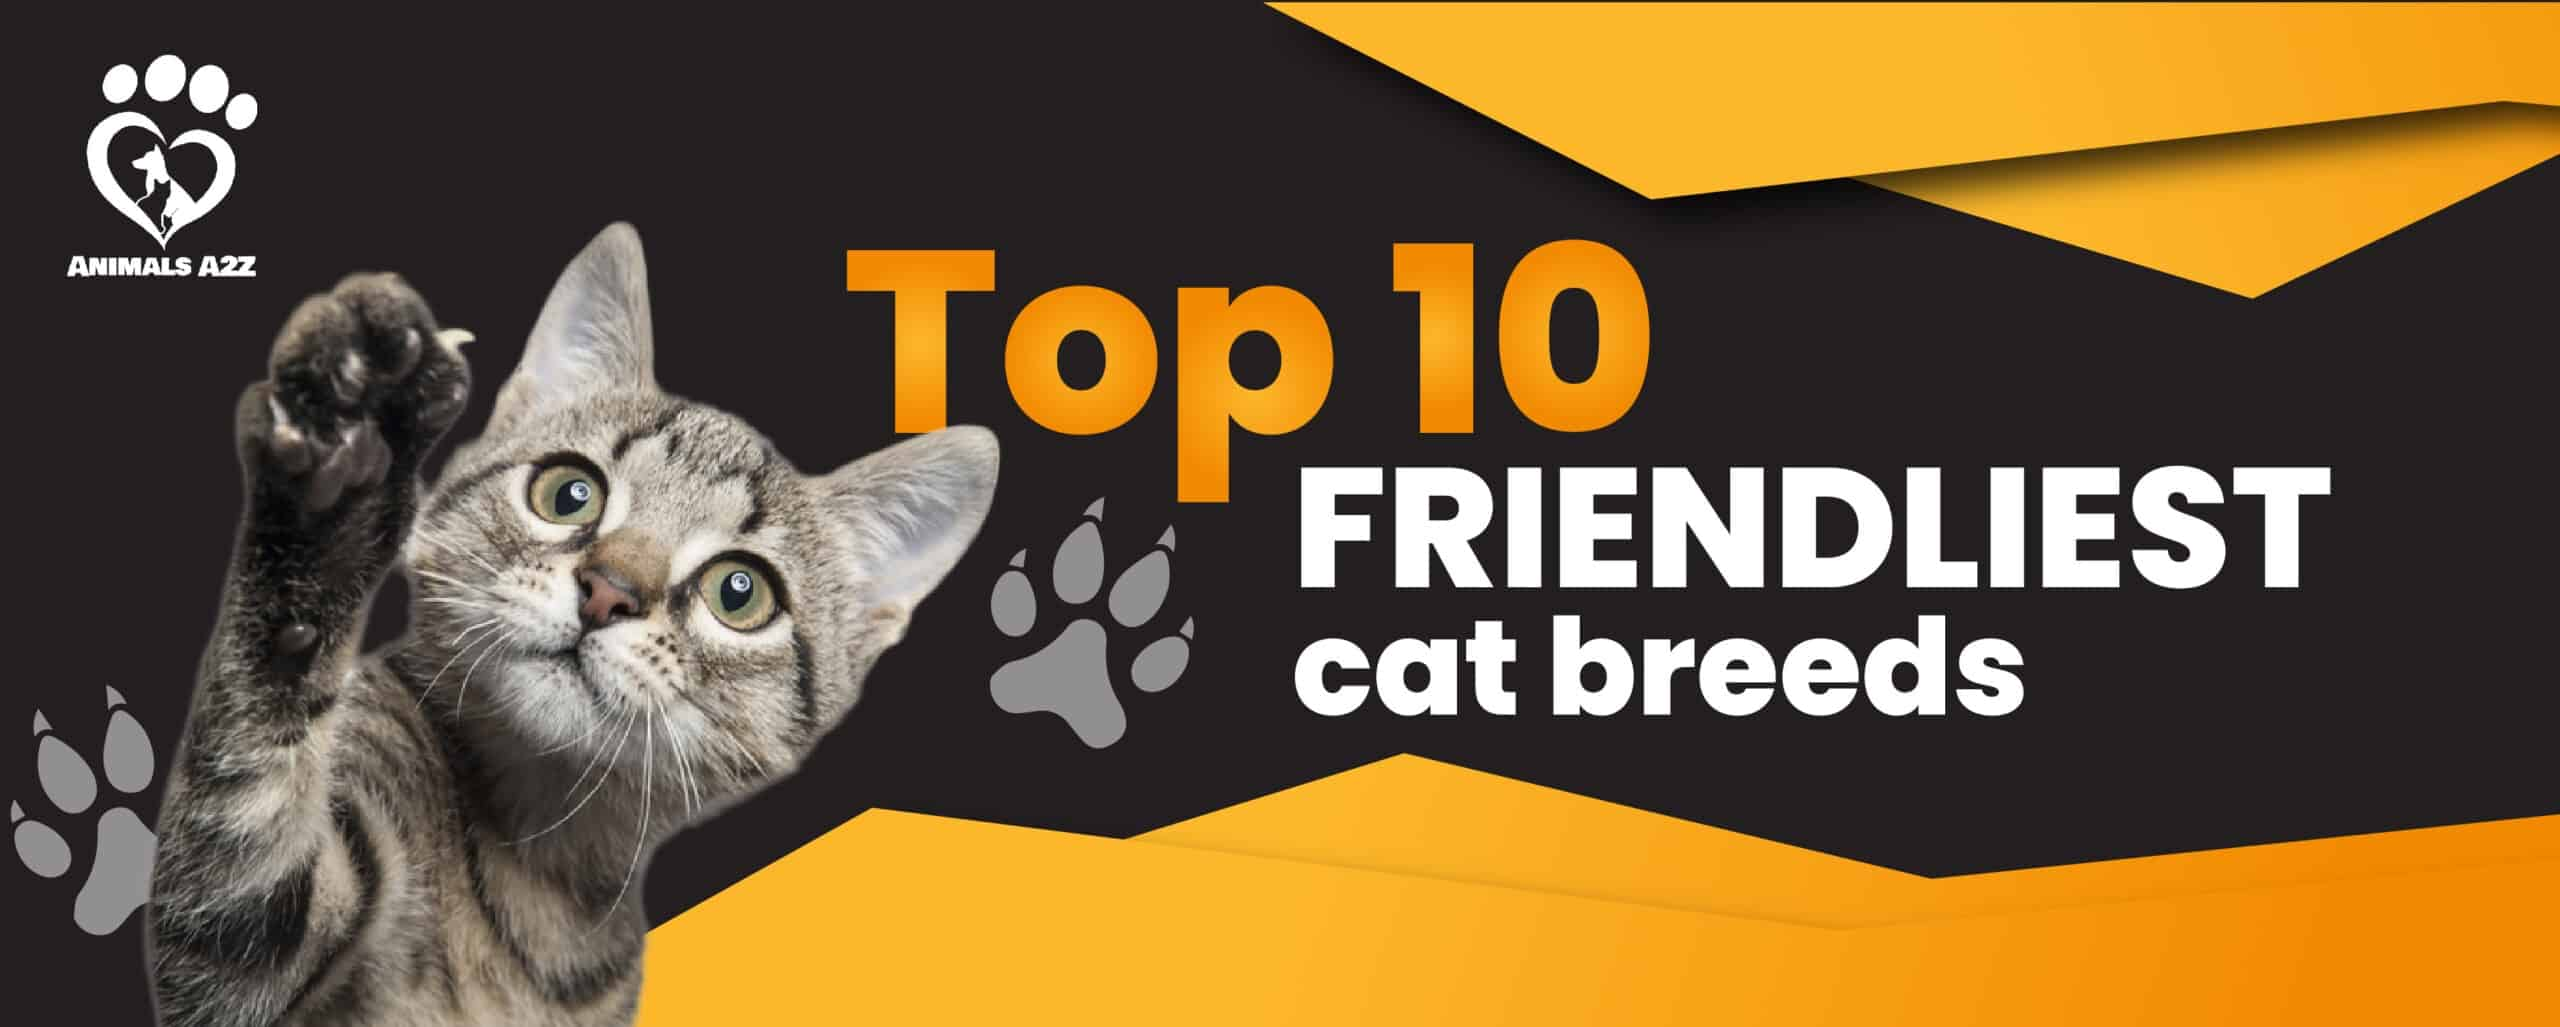 top 10 friendliest cats